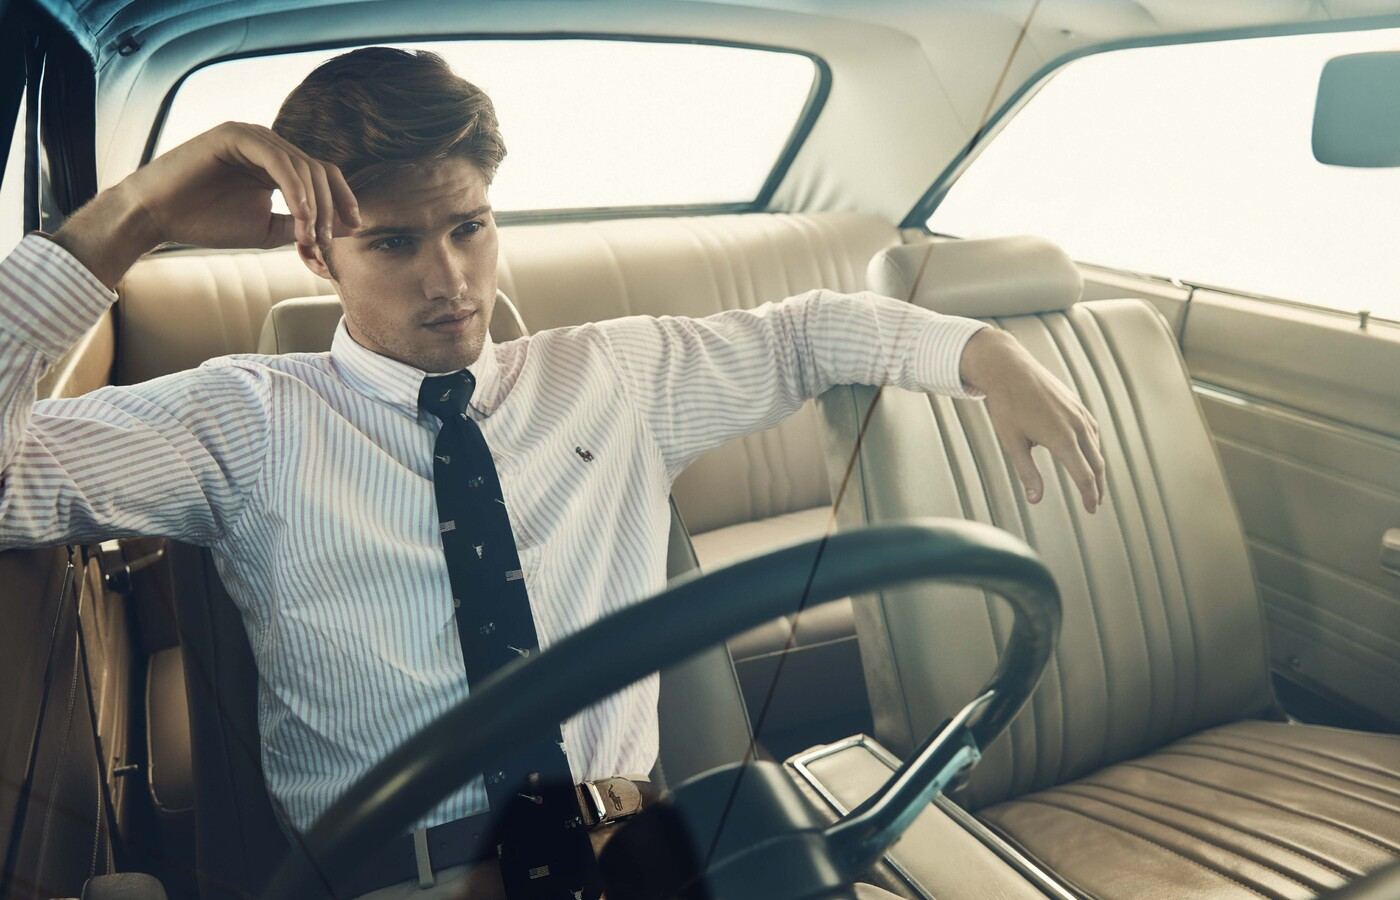 male-model-sitting-in-the-car-ralph-lauren-photoshoot-pz.jpg